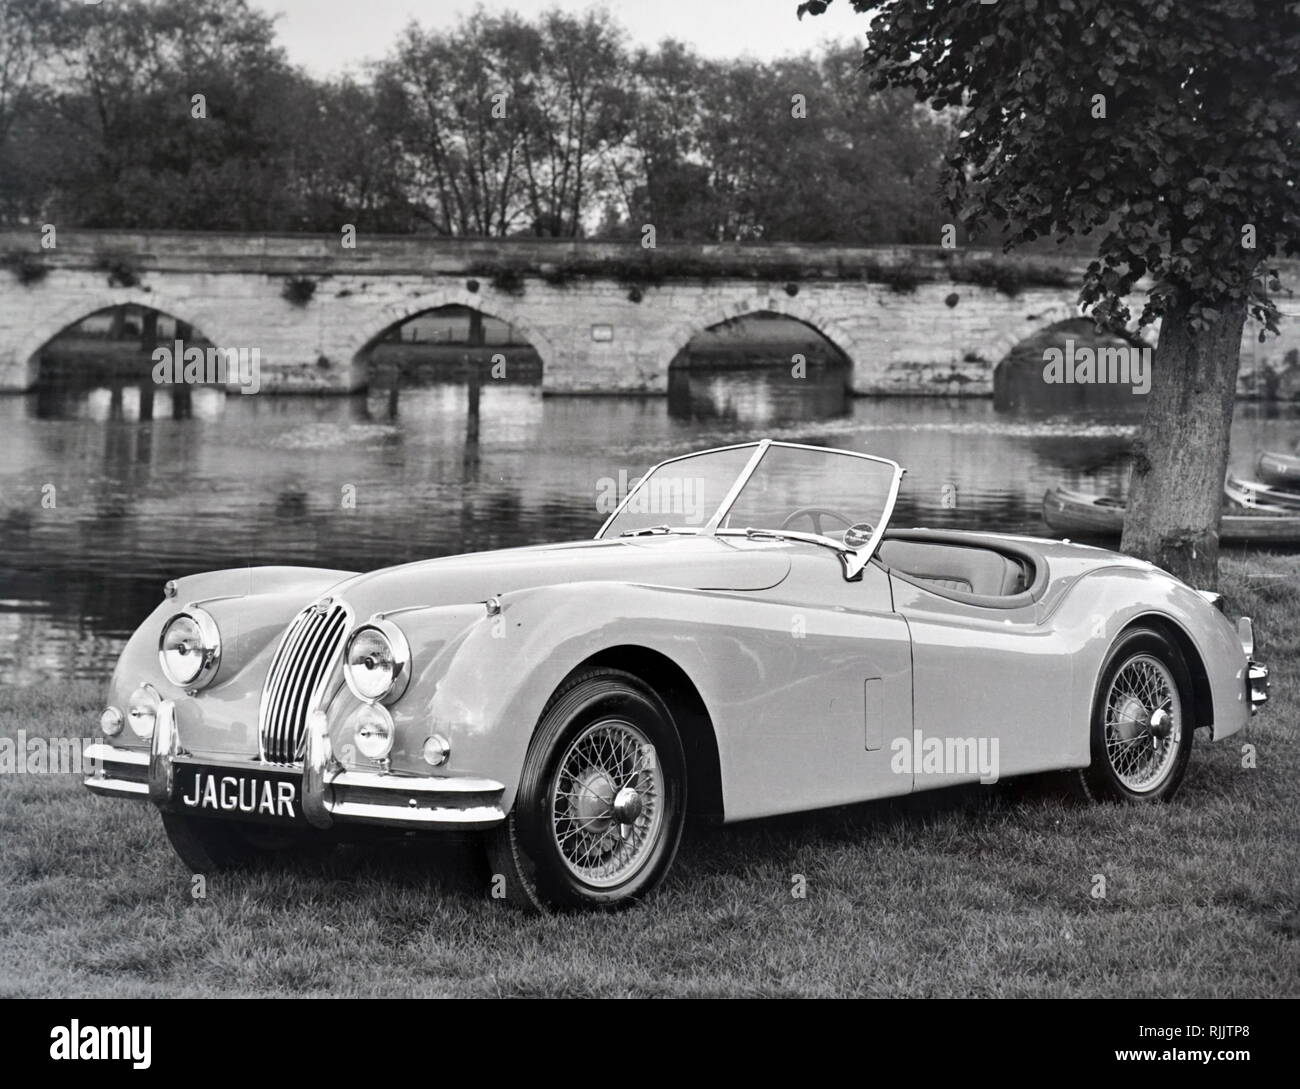 1954 Jaguar Xk140: 1954 1957 Stock Photos & 1954 1957 Stock Images